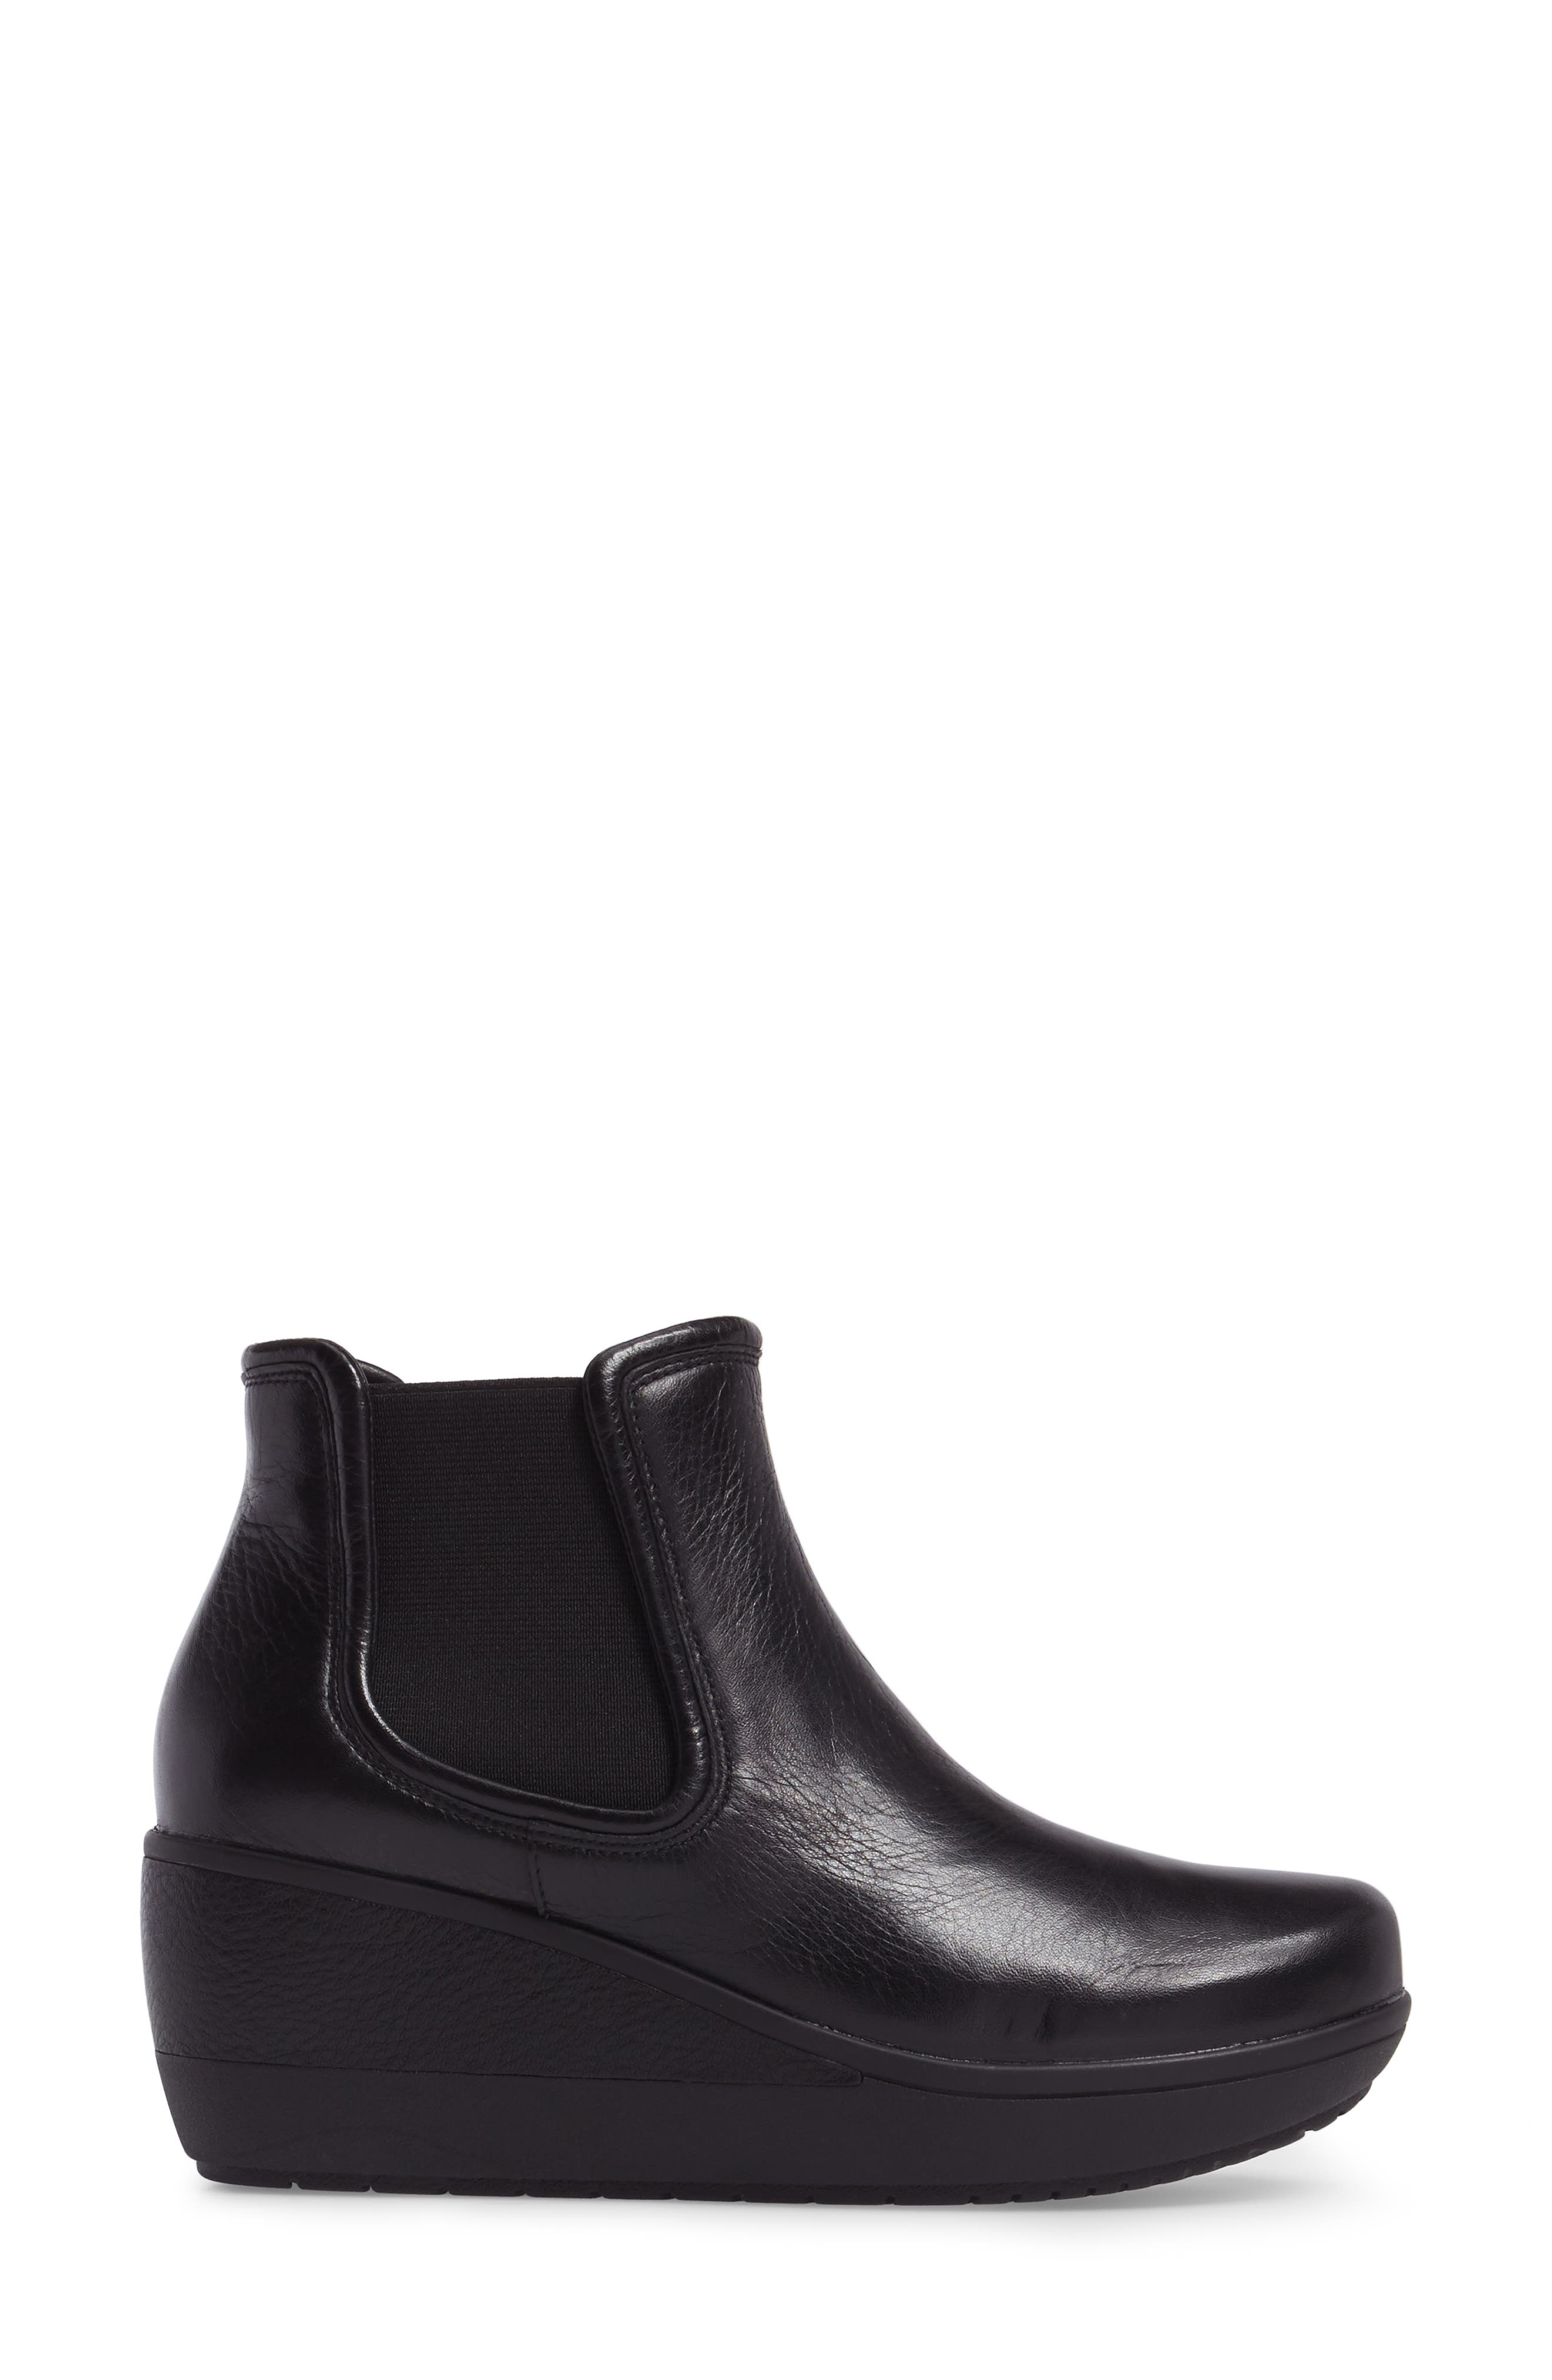 Wynnmere Mara Boot,                             Alternate thumbnail 3, color,                             Black Leather